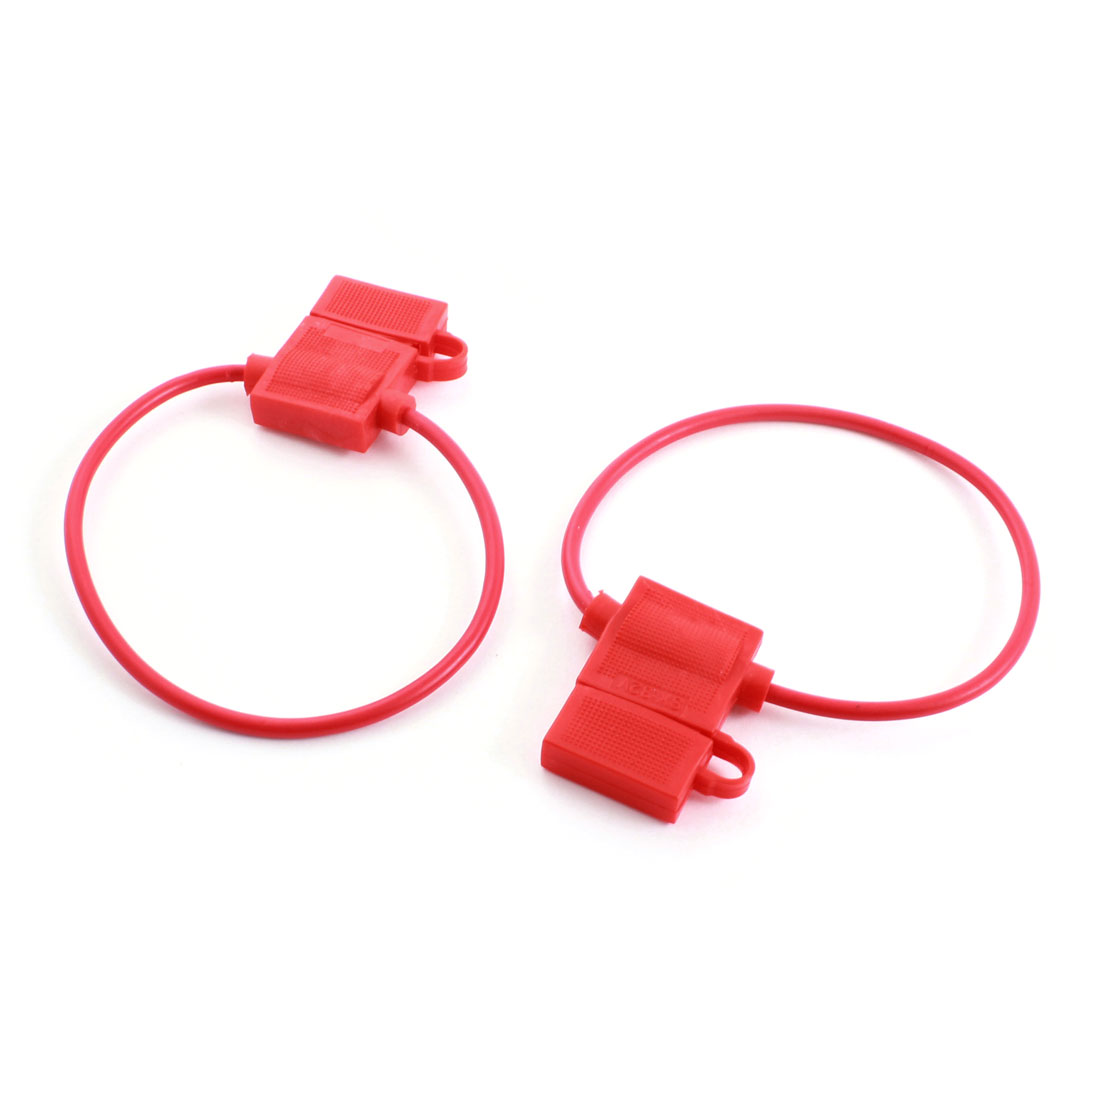 2 Pcs Red Plastic Housing ATC Blade Inline Wired Fuse Holder Case Box for Vehicle